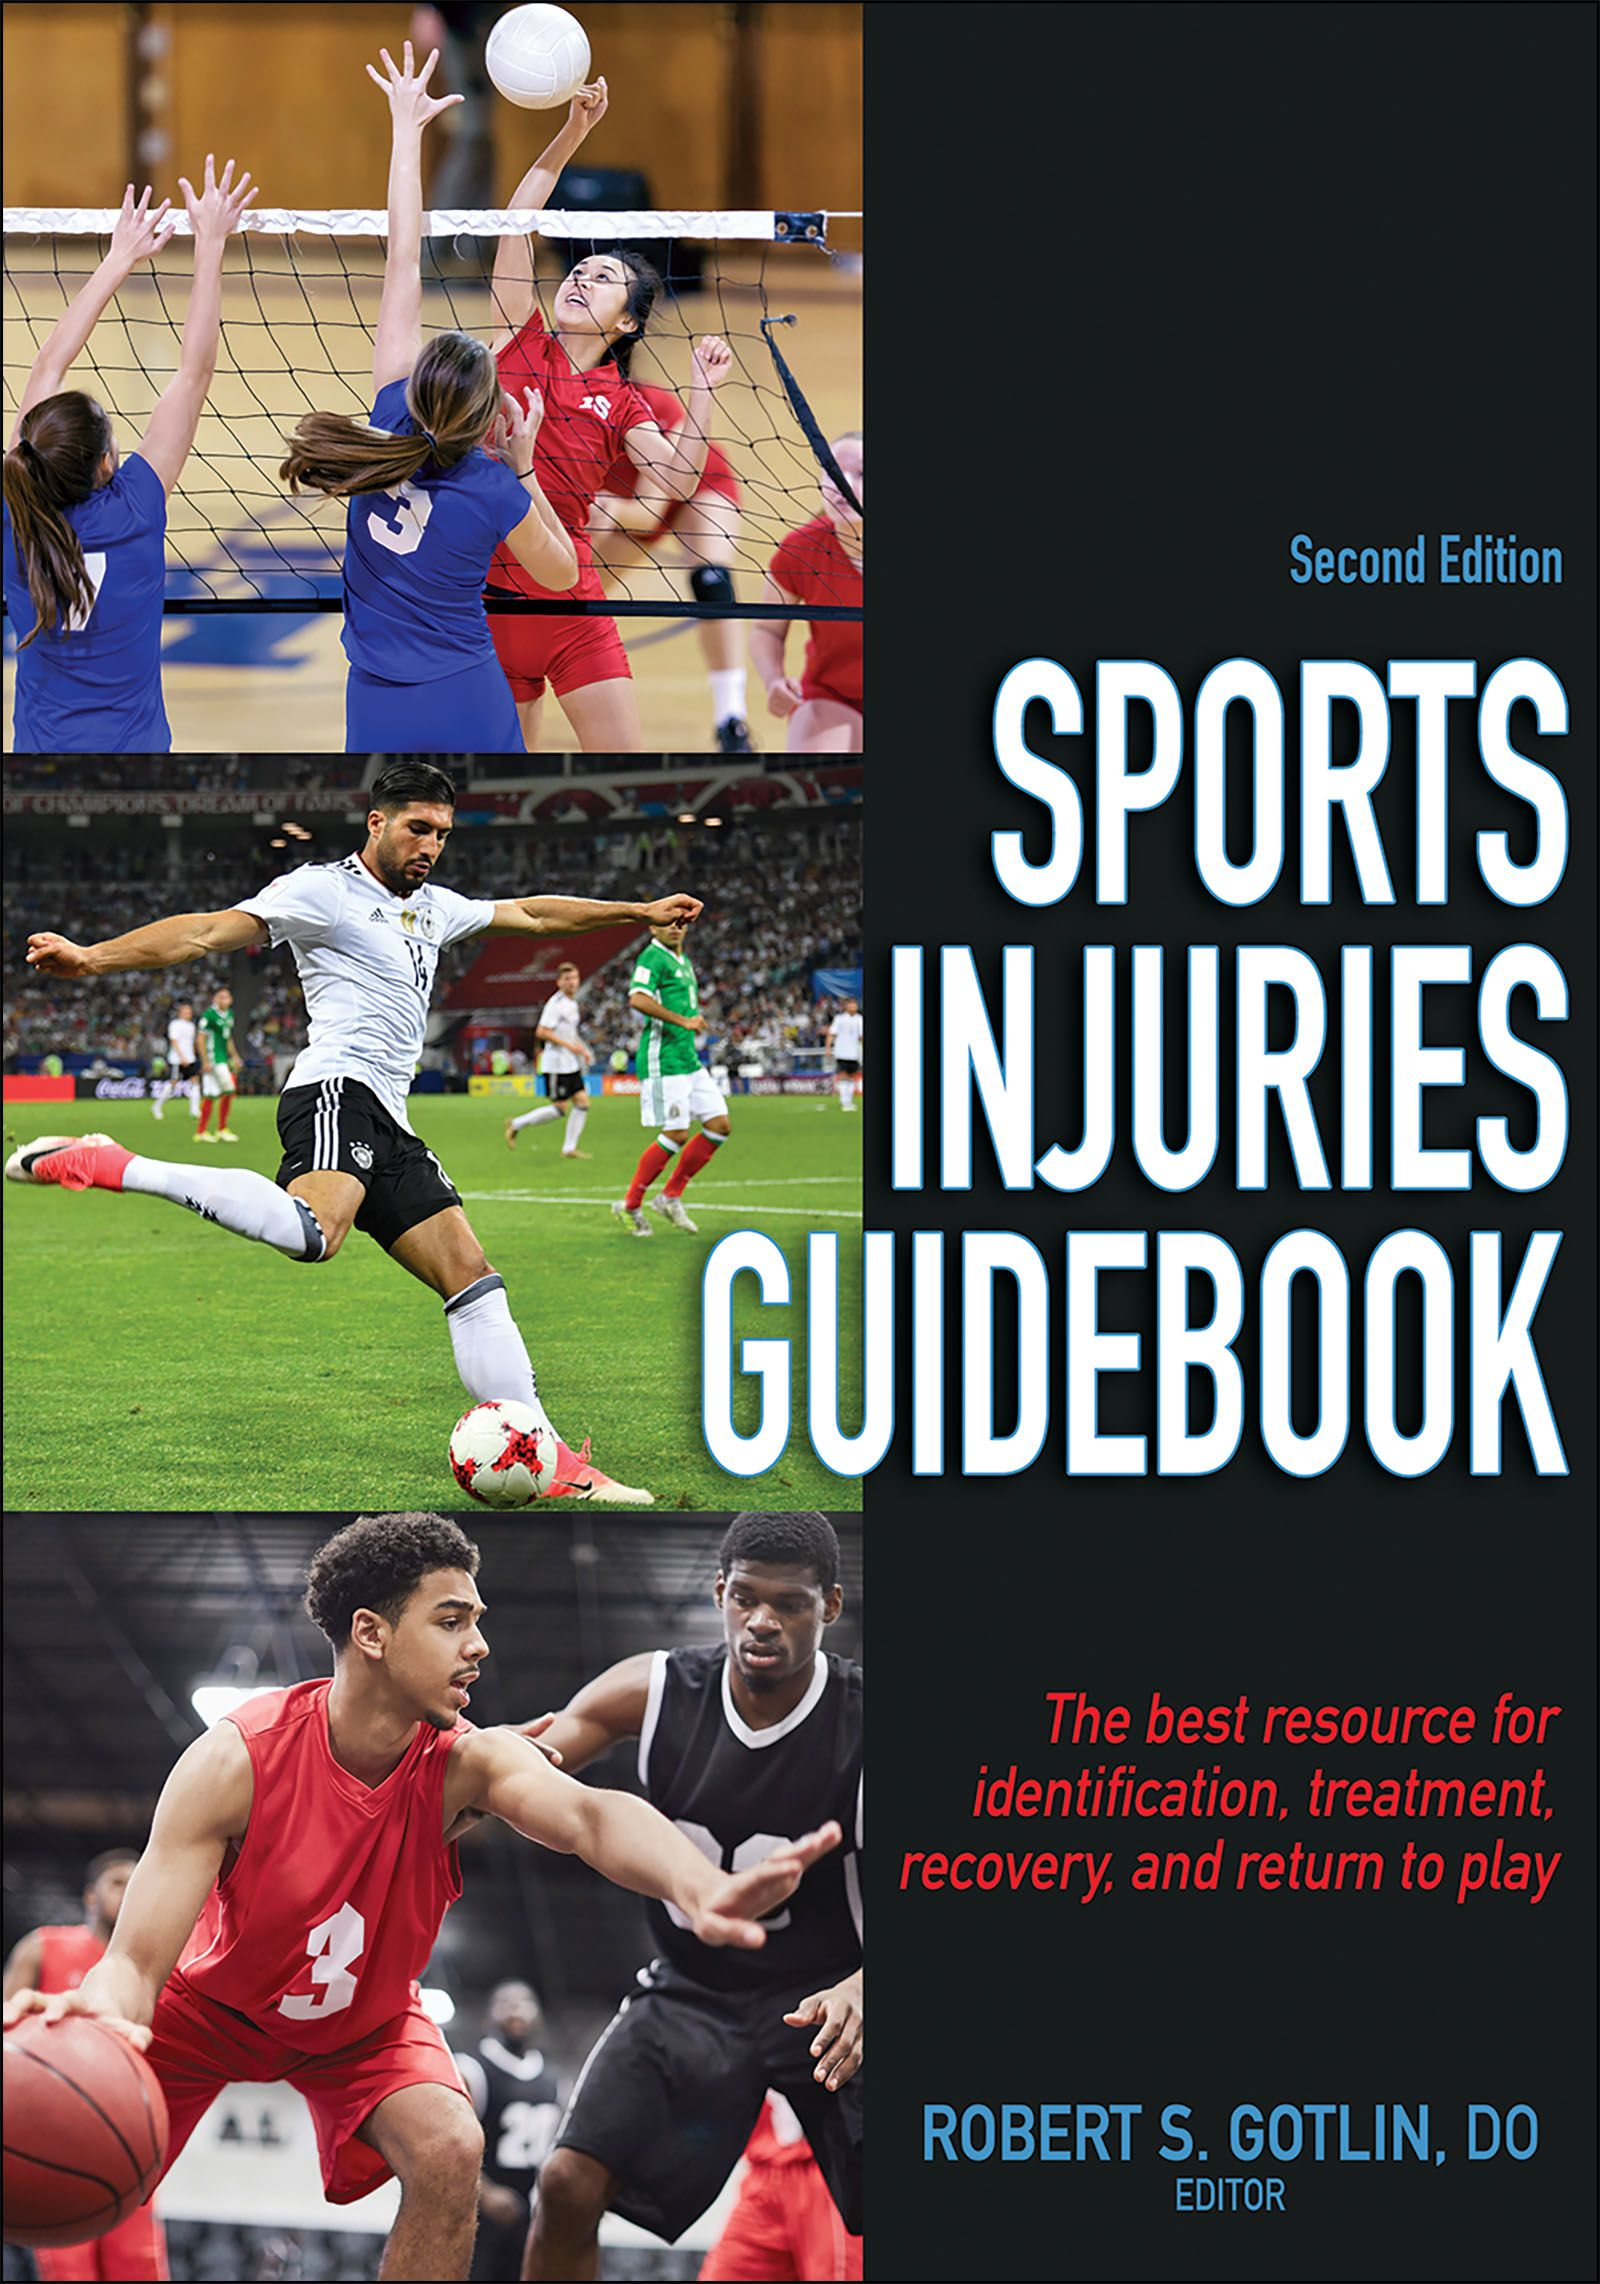 Sports Injuries Guidebook helps you get back in the game